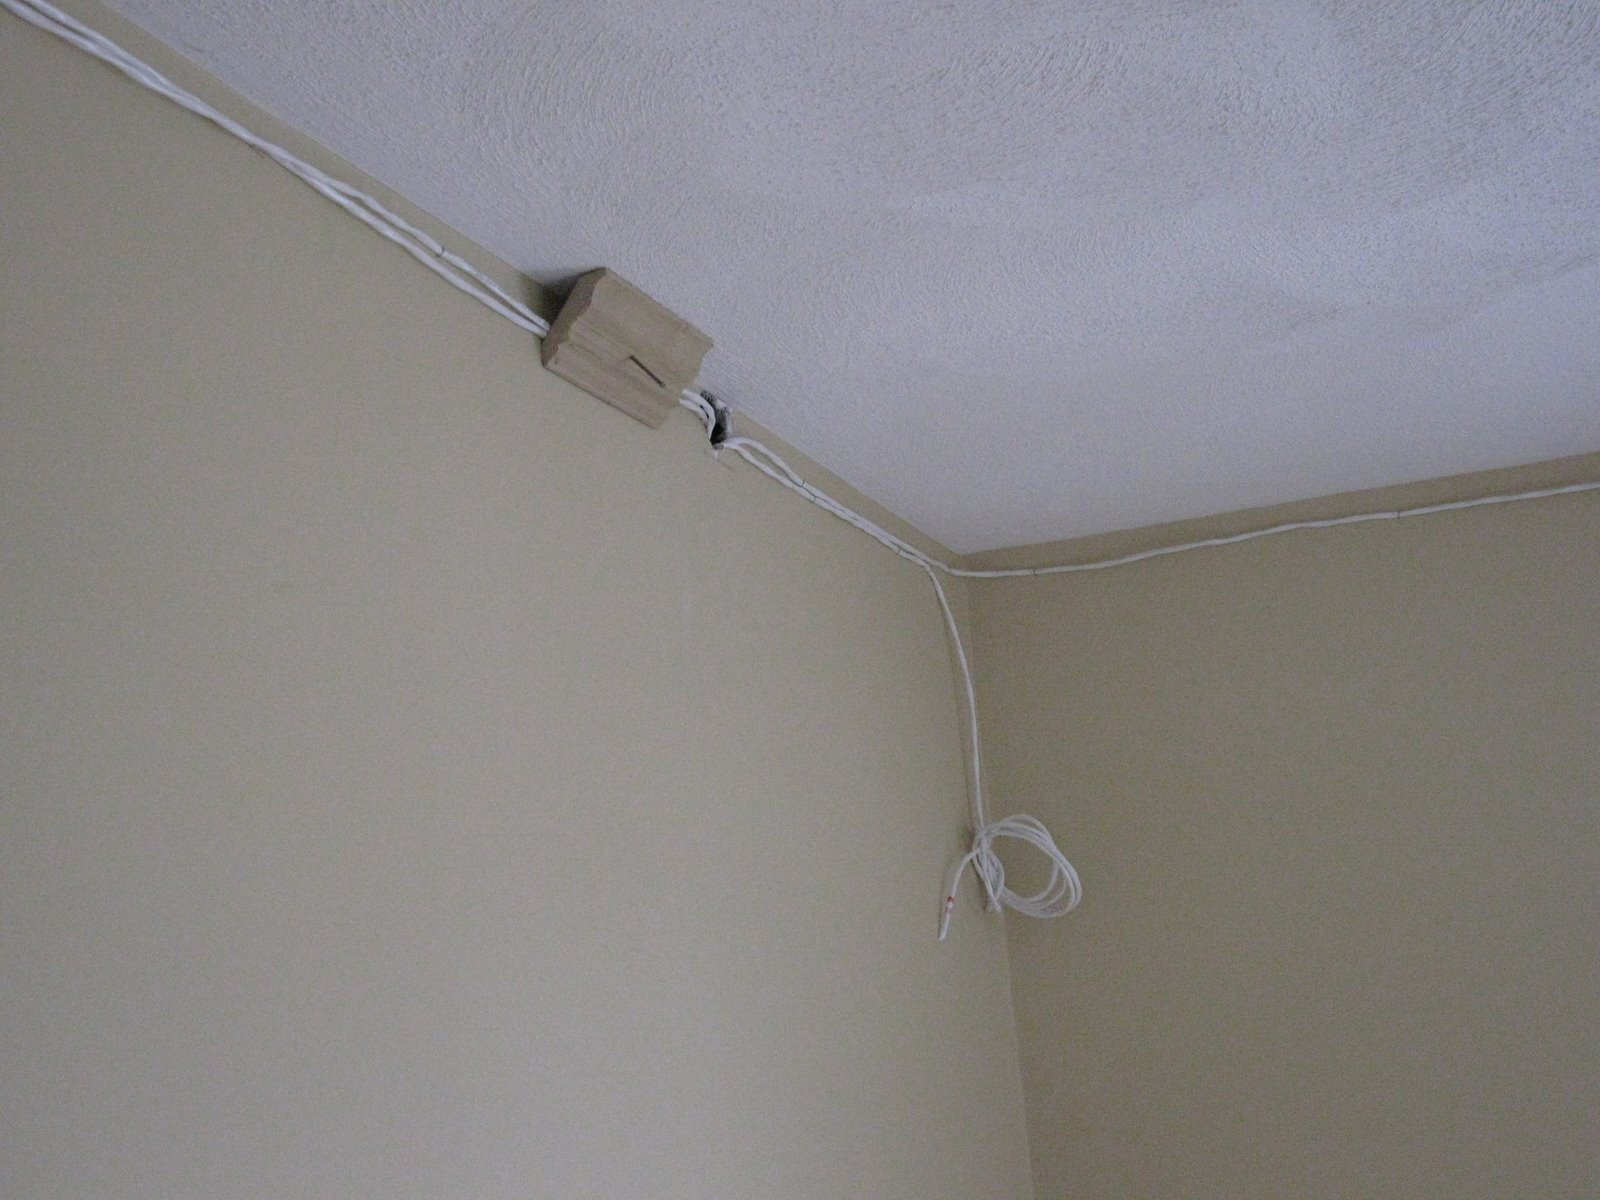 How To Install Speaker Wire Behind Crown Molding A Concord Carpenter Wiring Finished Basement Hiding The Wires In Stud Bay